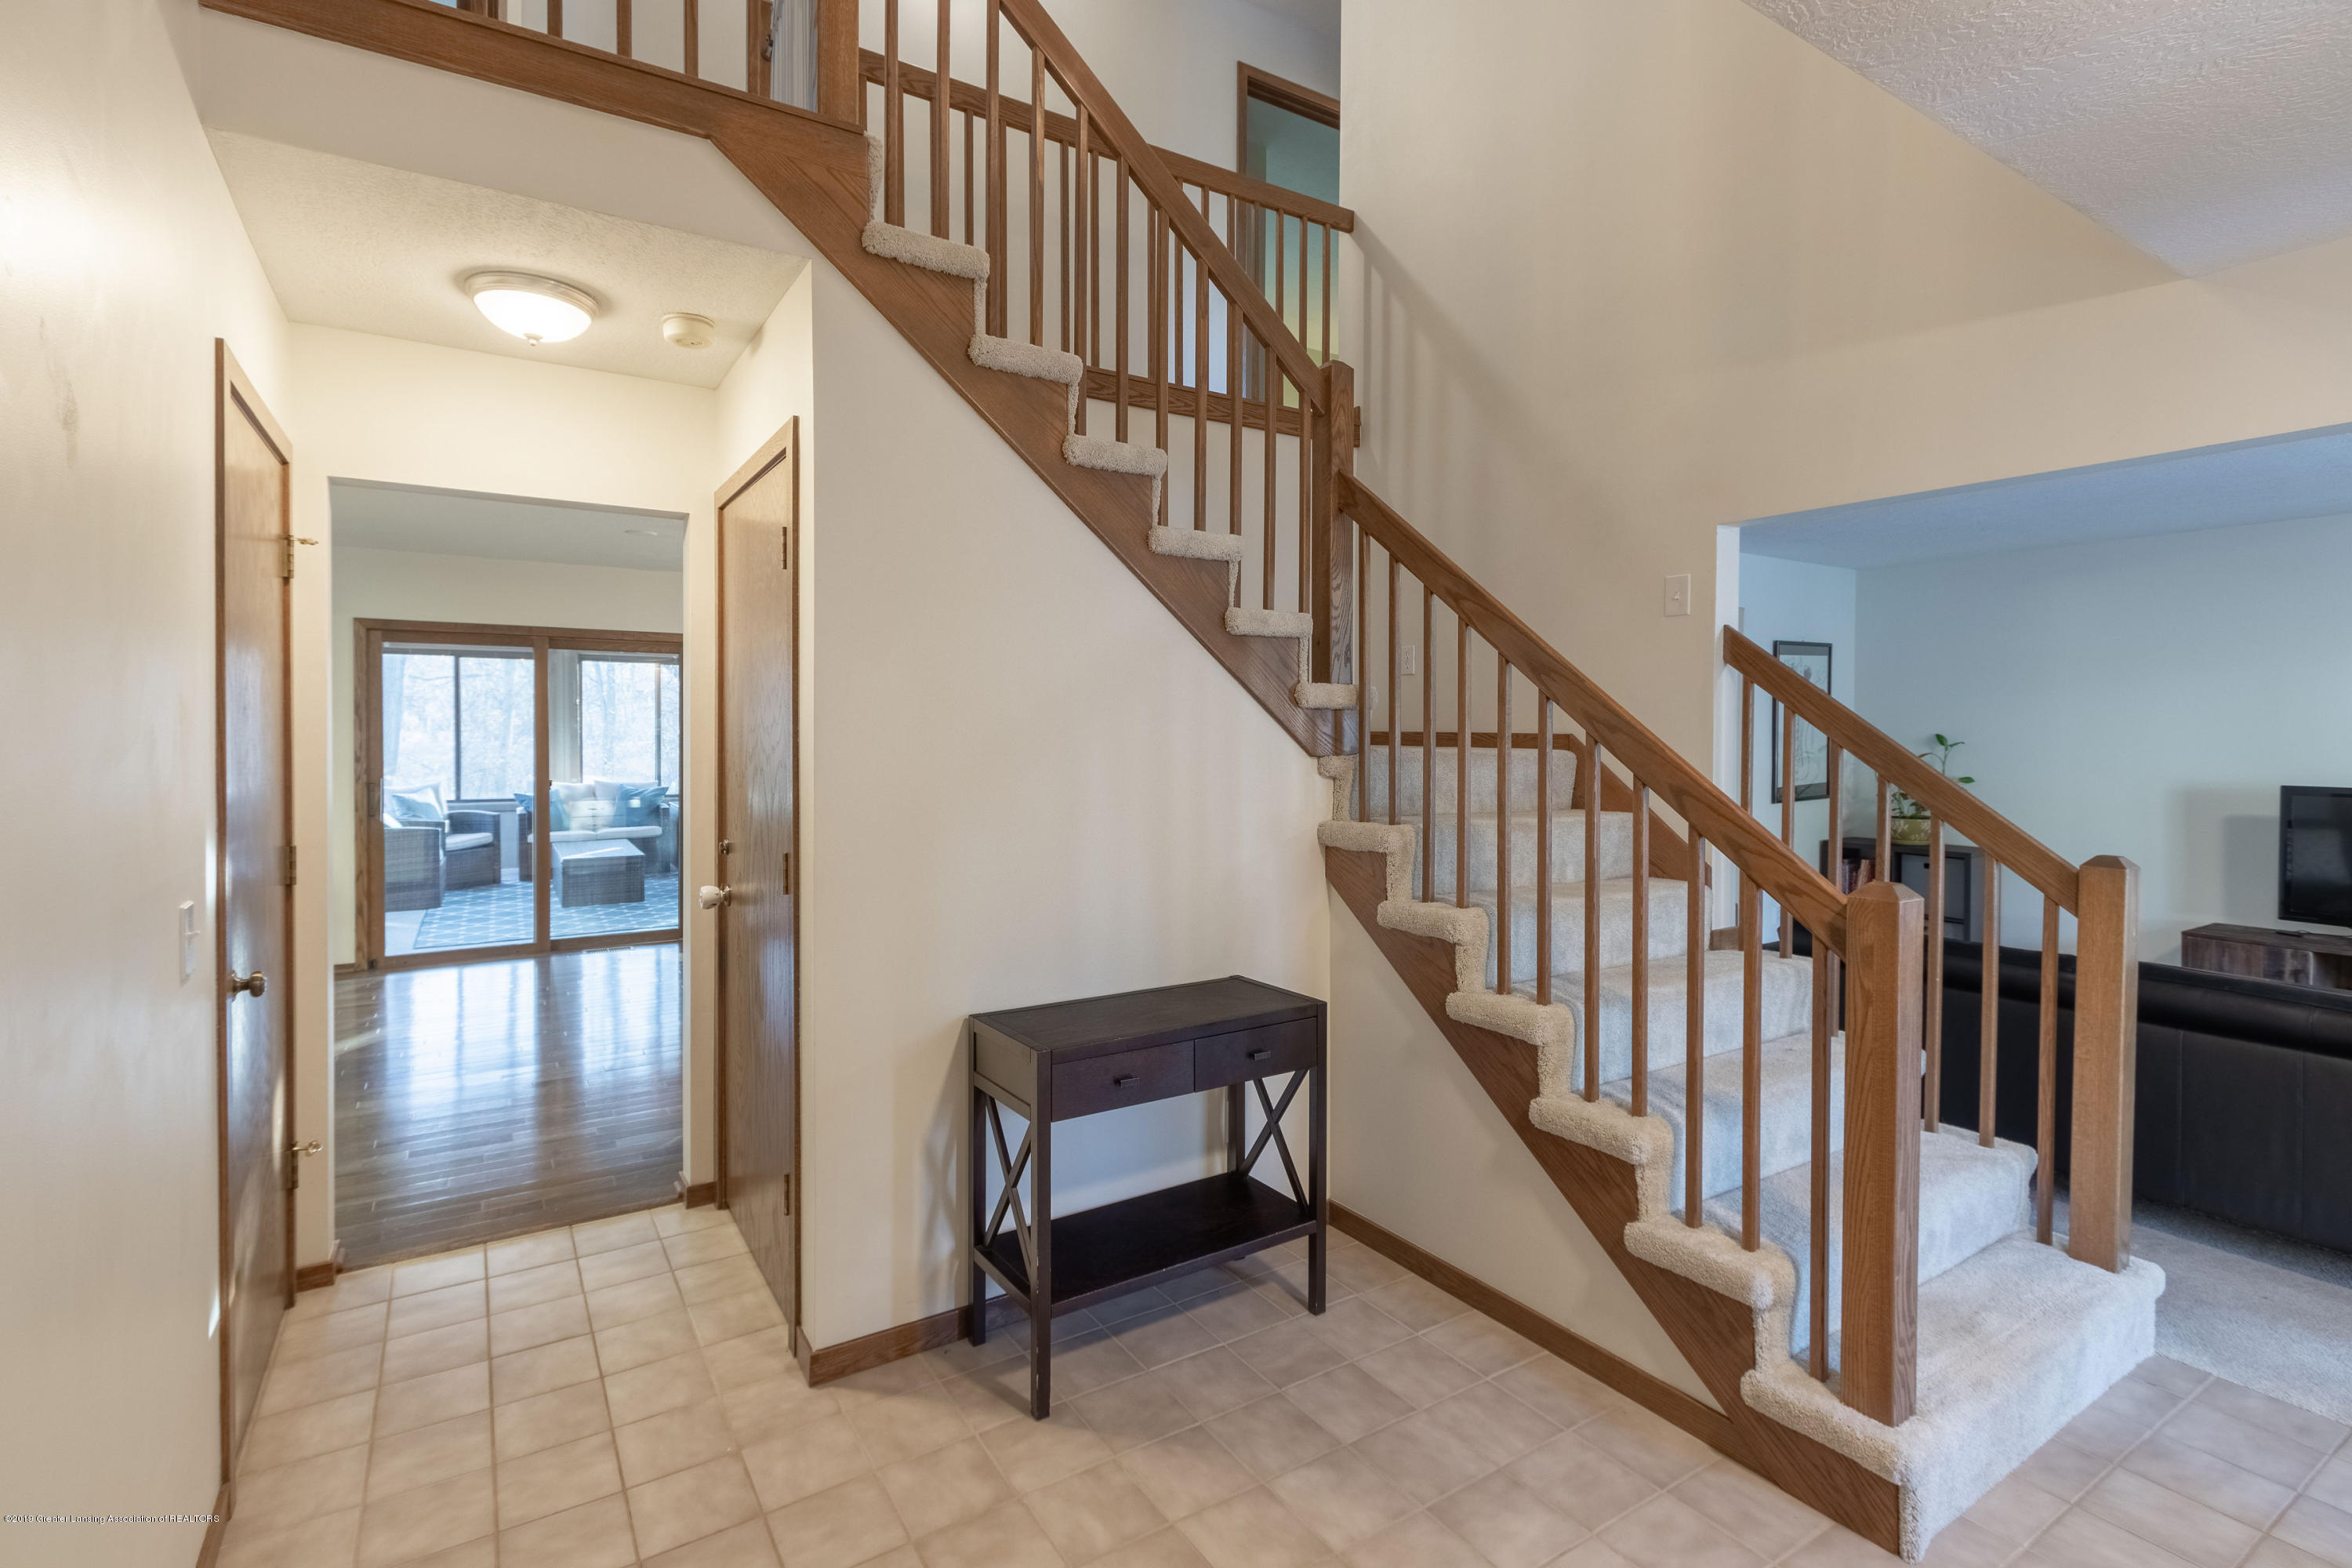 2543 Dustin Rd - Nice large open Foyer - 18